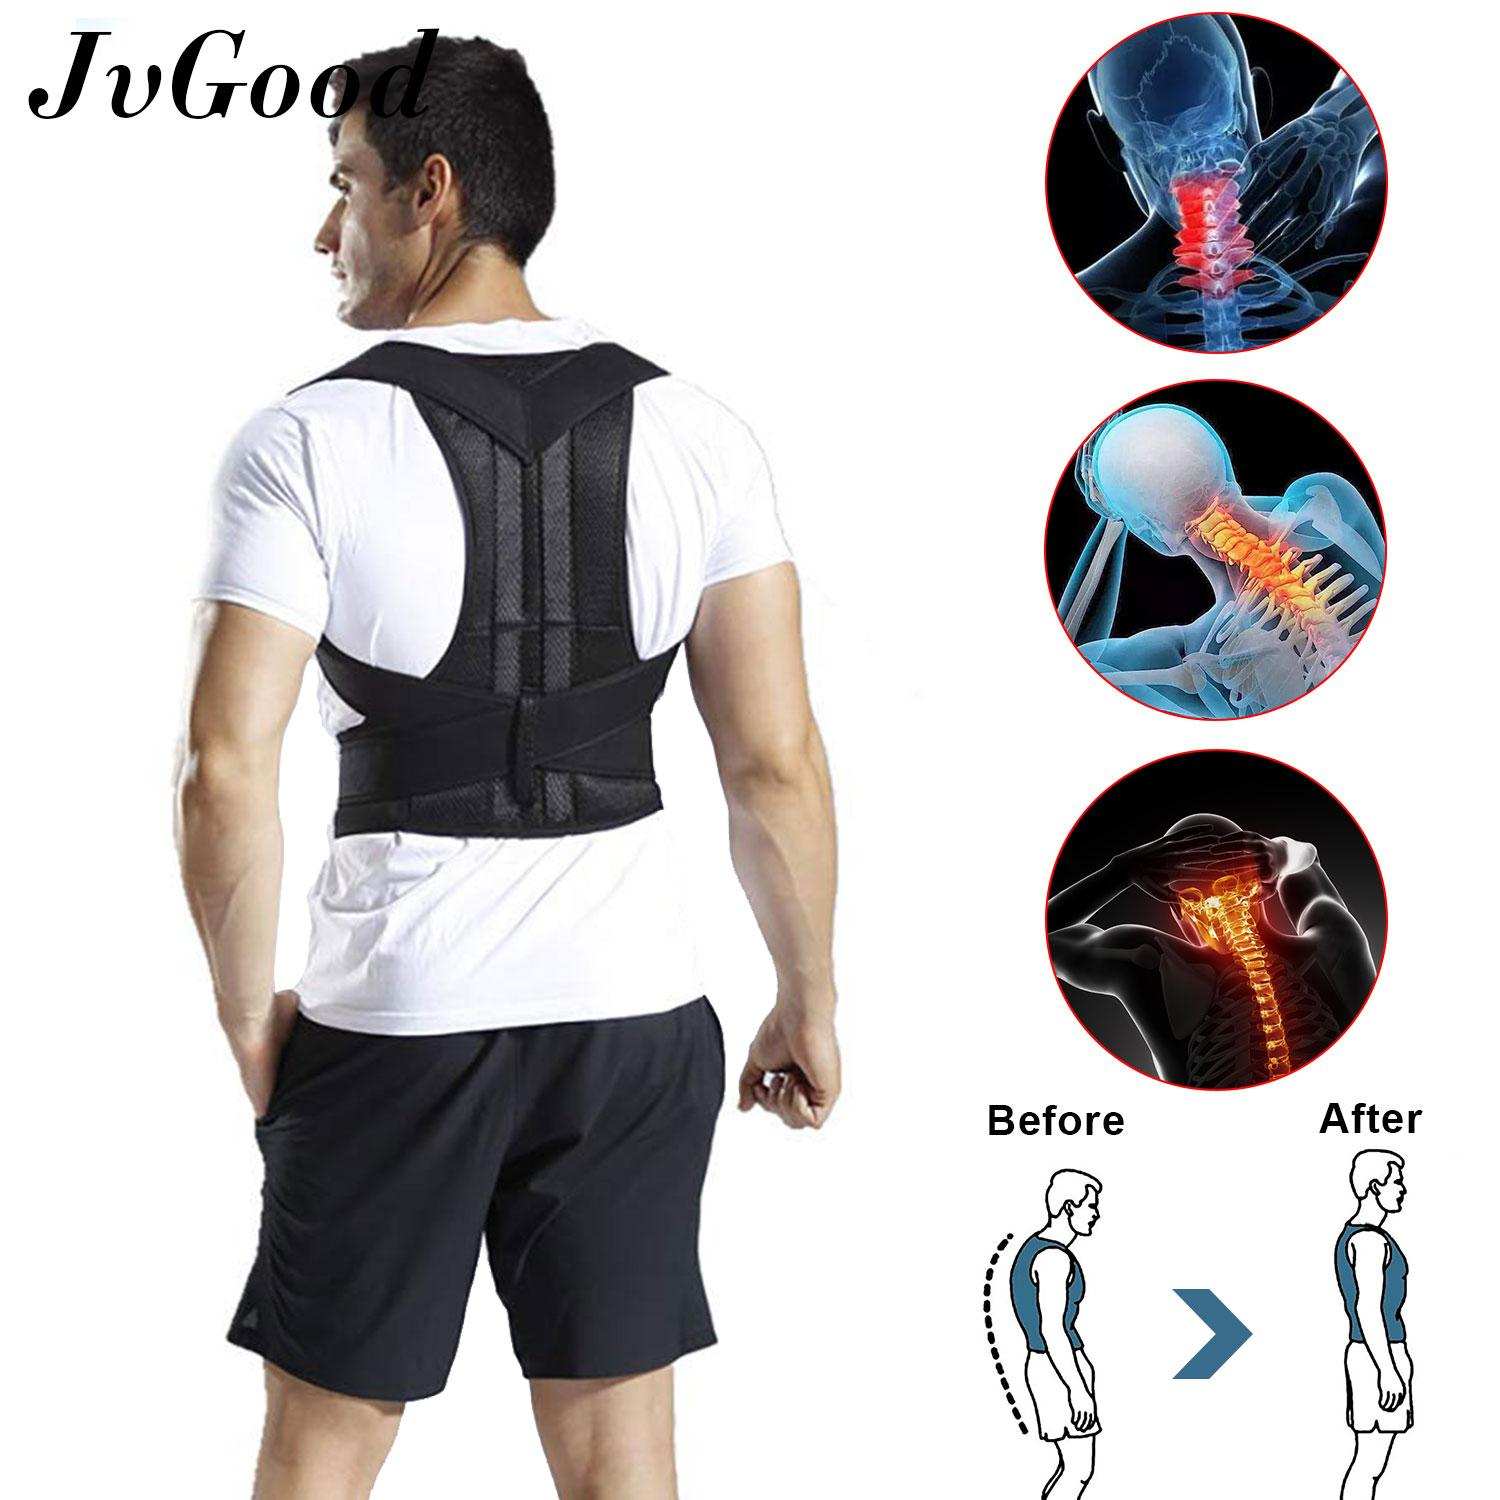 Jvgood รั้งสนับสนุนท่าทาง Posture Support Brace Back Support Belt Back Shoulder Lumbar Humpback Corrector Belt Therapy Adjustable Shoulder Back Brace Belt Strap For Children Teenagers Adults By Jvgood.